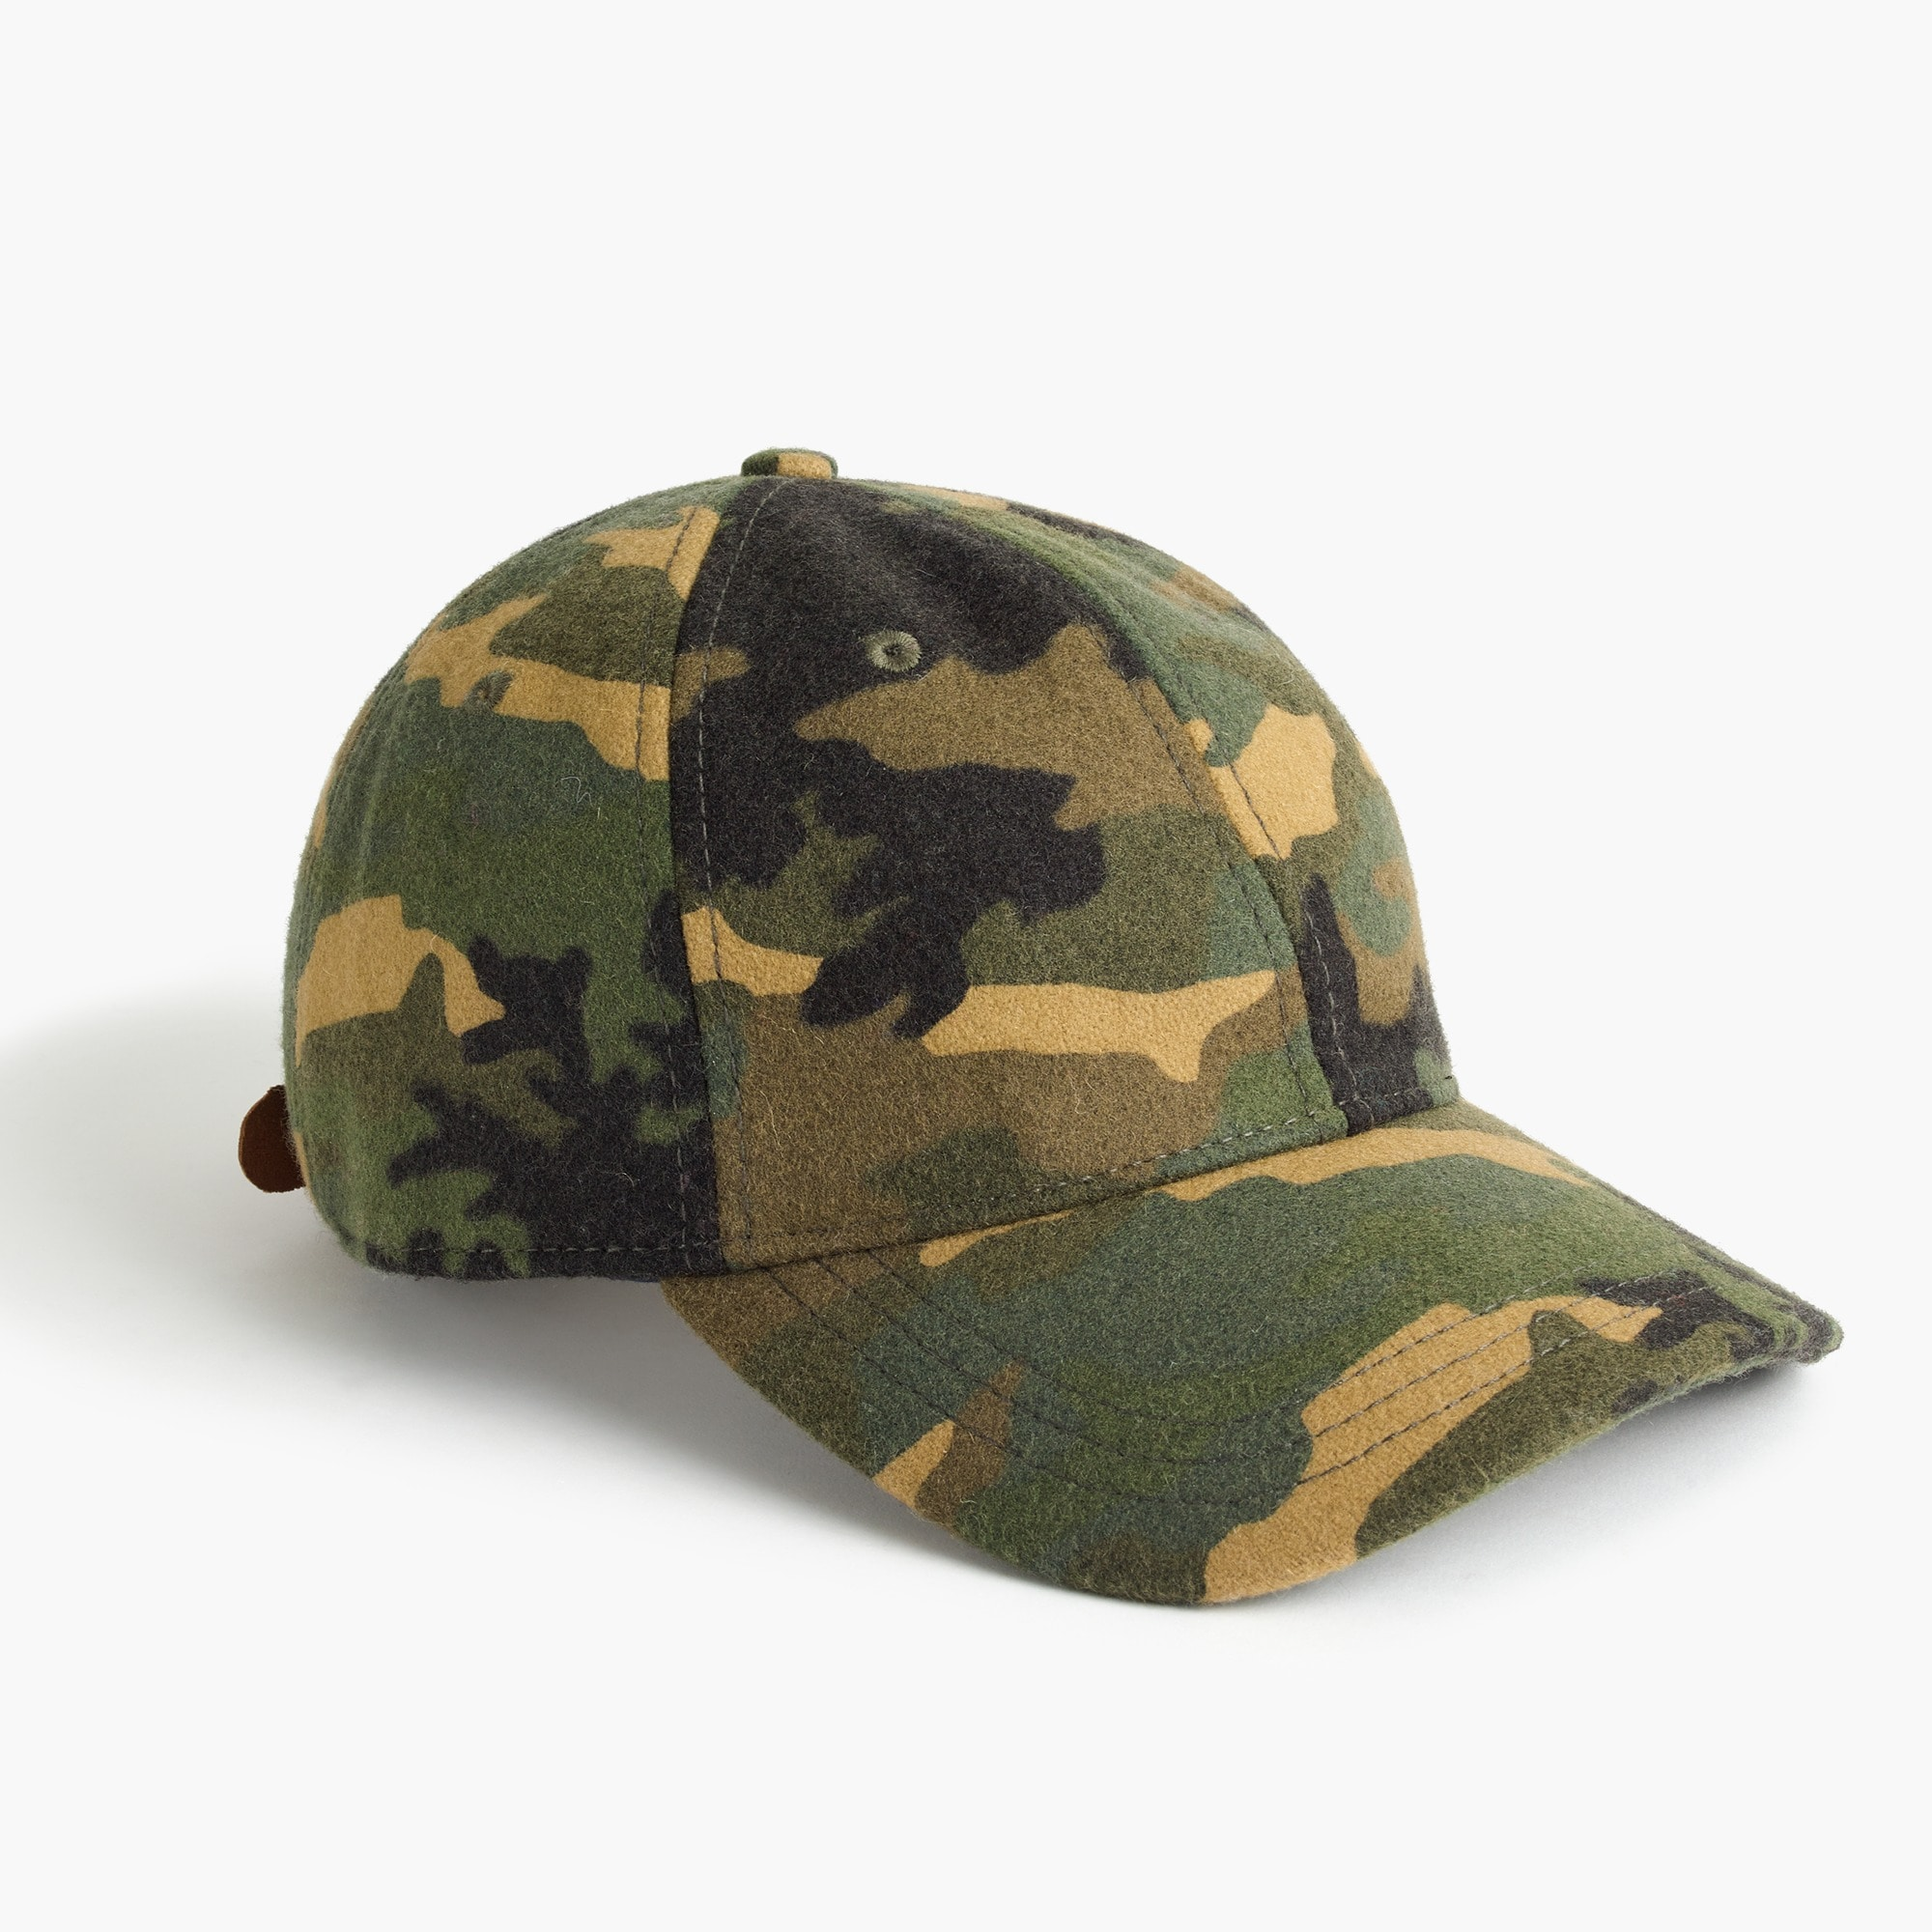 men's wallace & barnes wool ball cap in camo